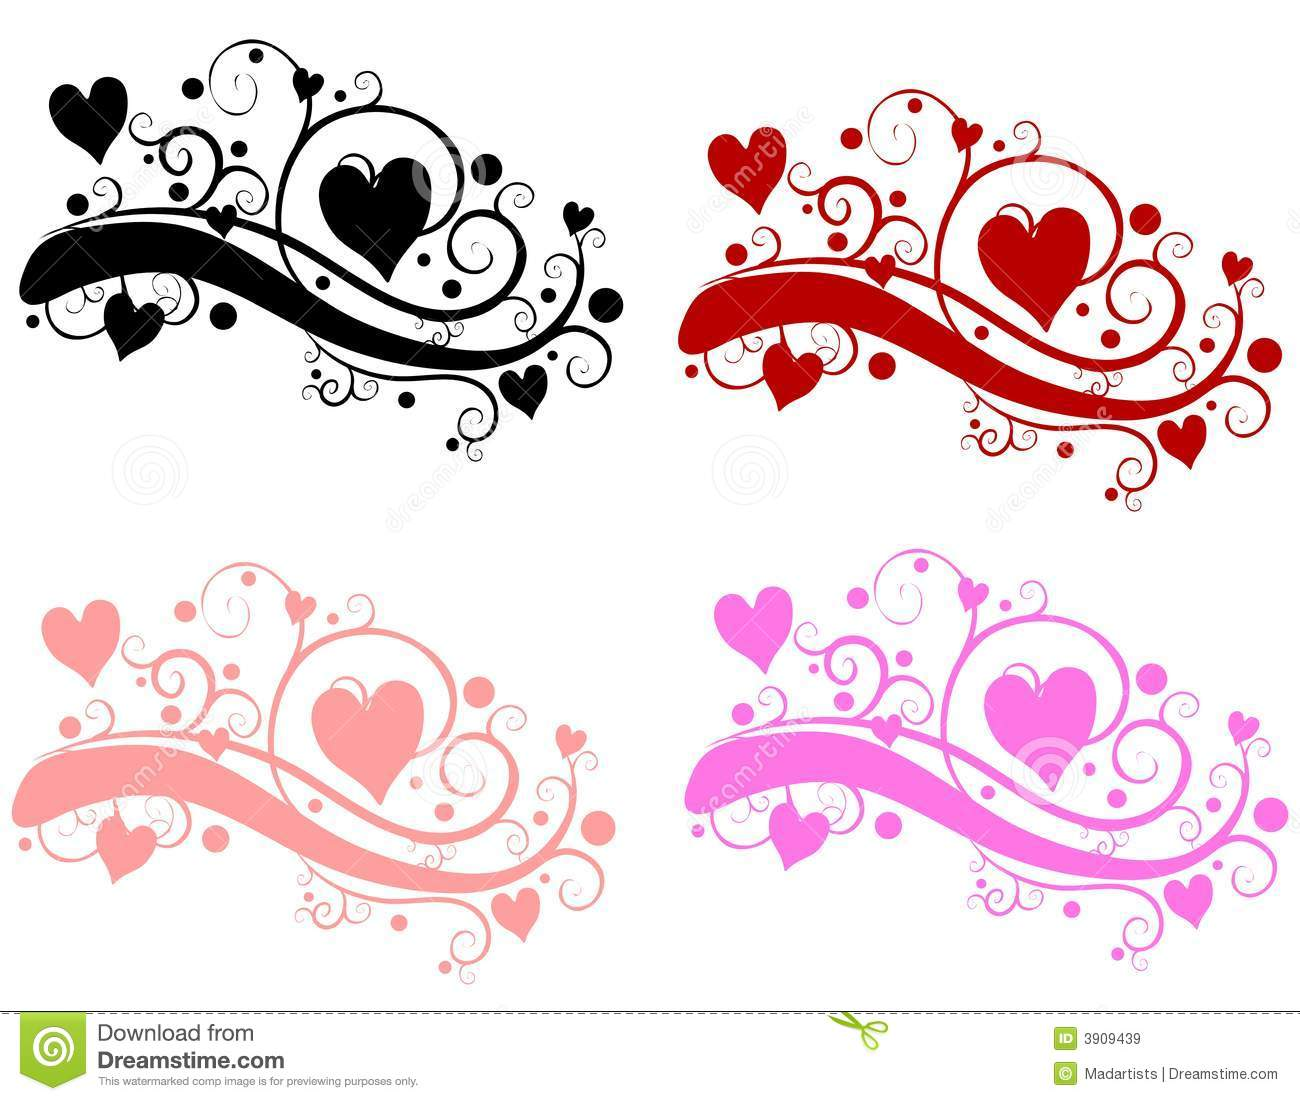 Decorative Swirls Valentine's Day Hearts Royalty Free Stock Images ...